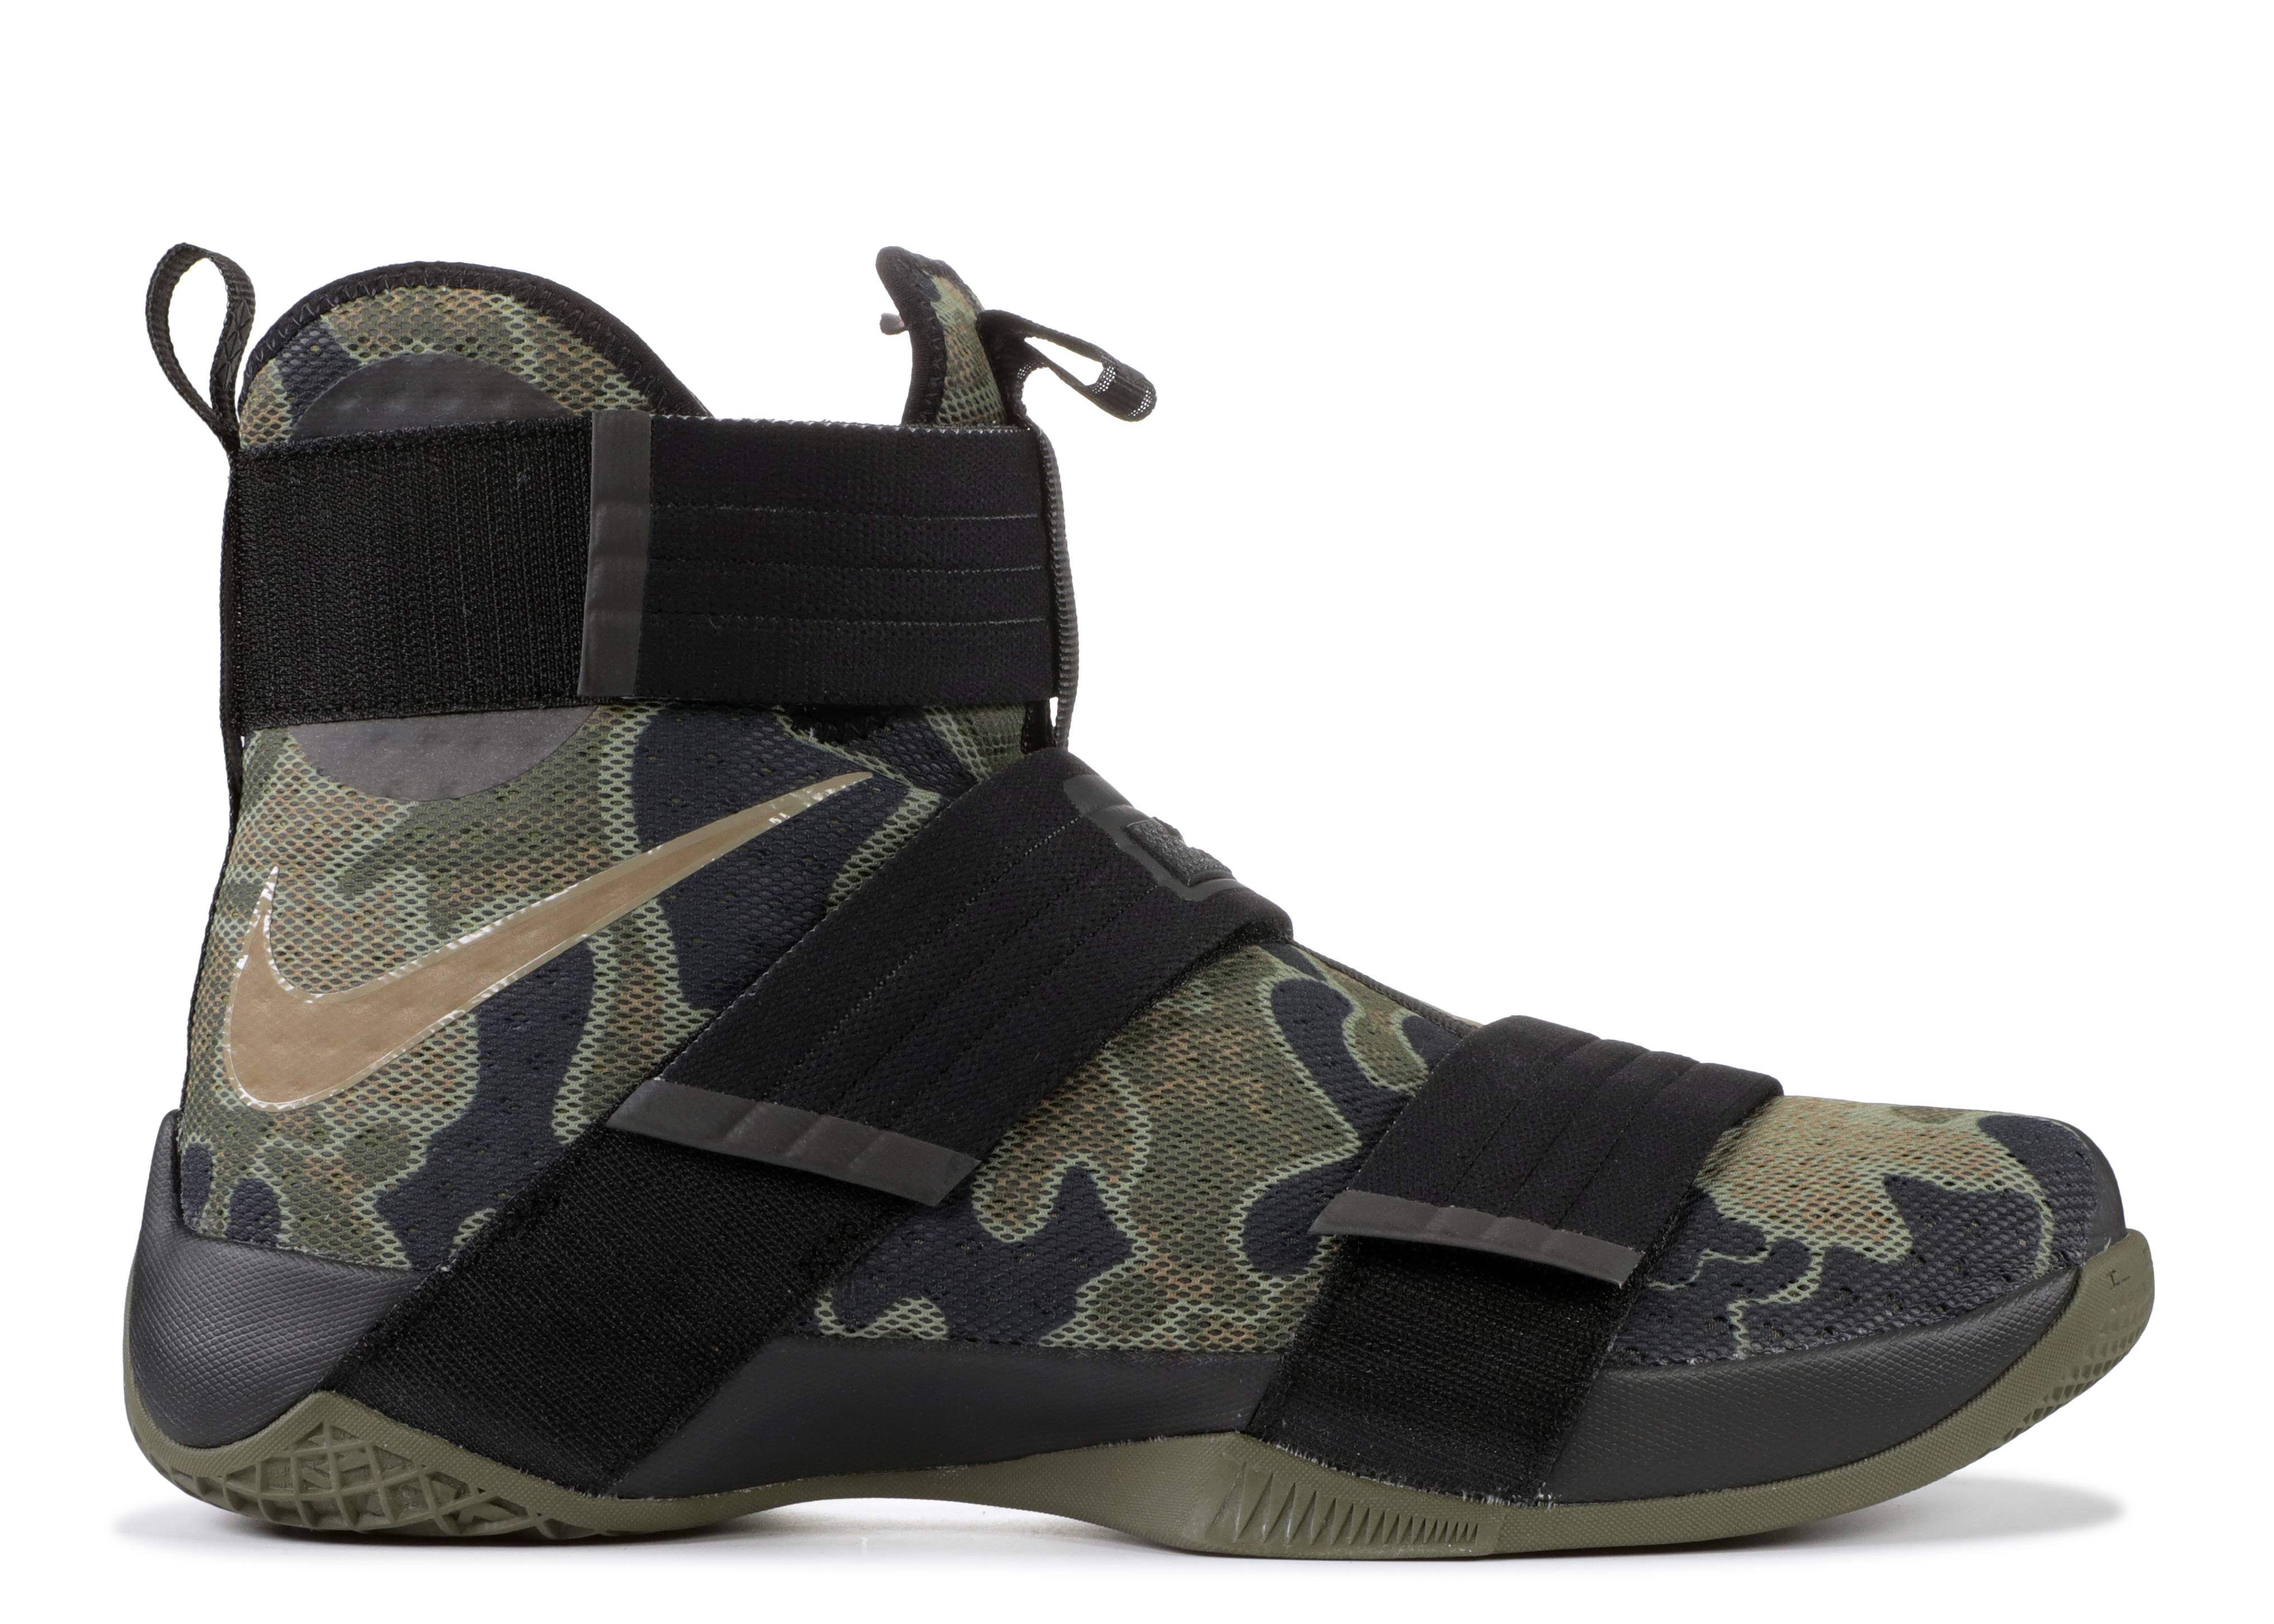 official photos 46652 39a12 Lebron Soldier 10 Sfg